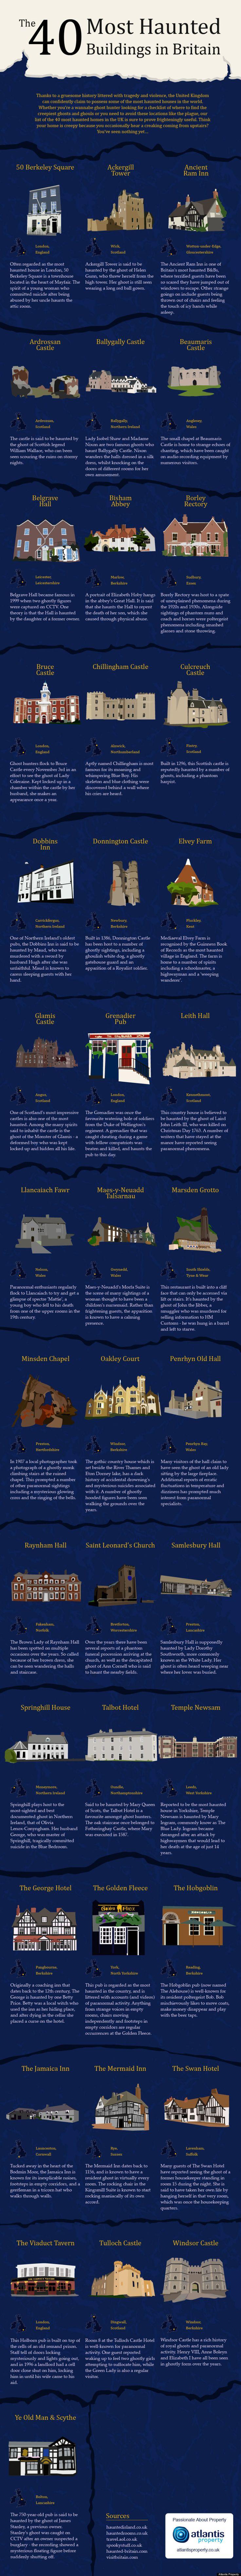 The 40 Most Haunted Buildings In Britain                                                                                                                                                                                 More